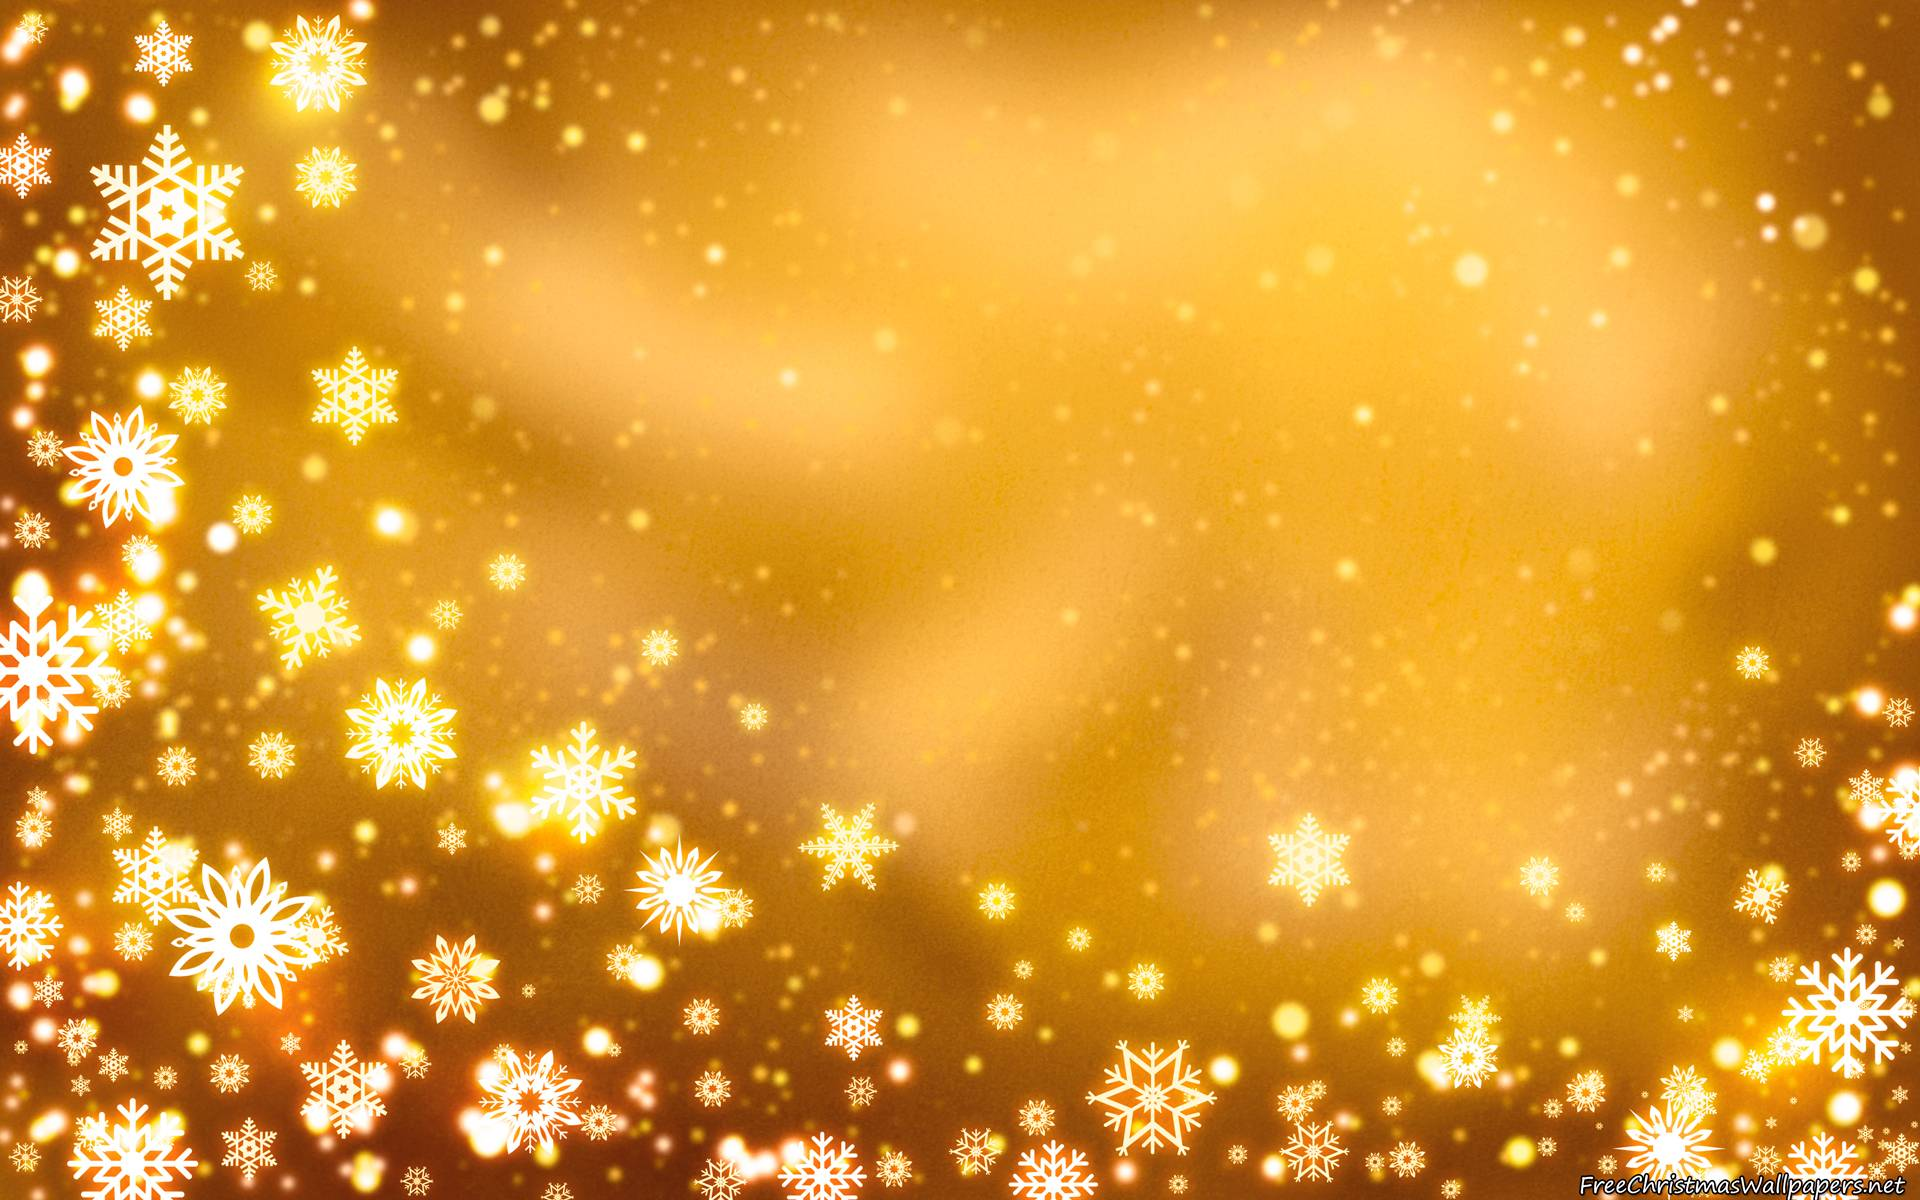 Yellow Christmas Backgrounds with Snowflakes Wallpapers